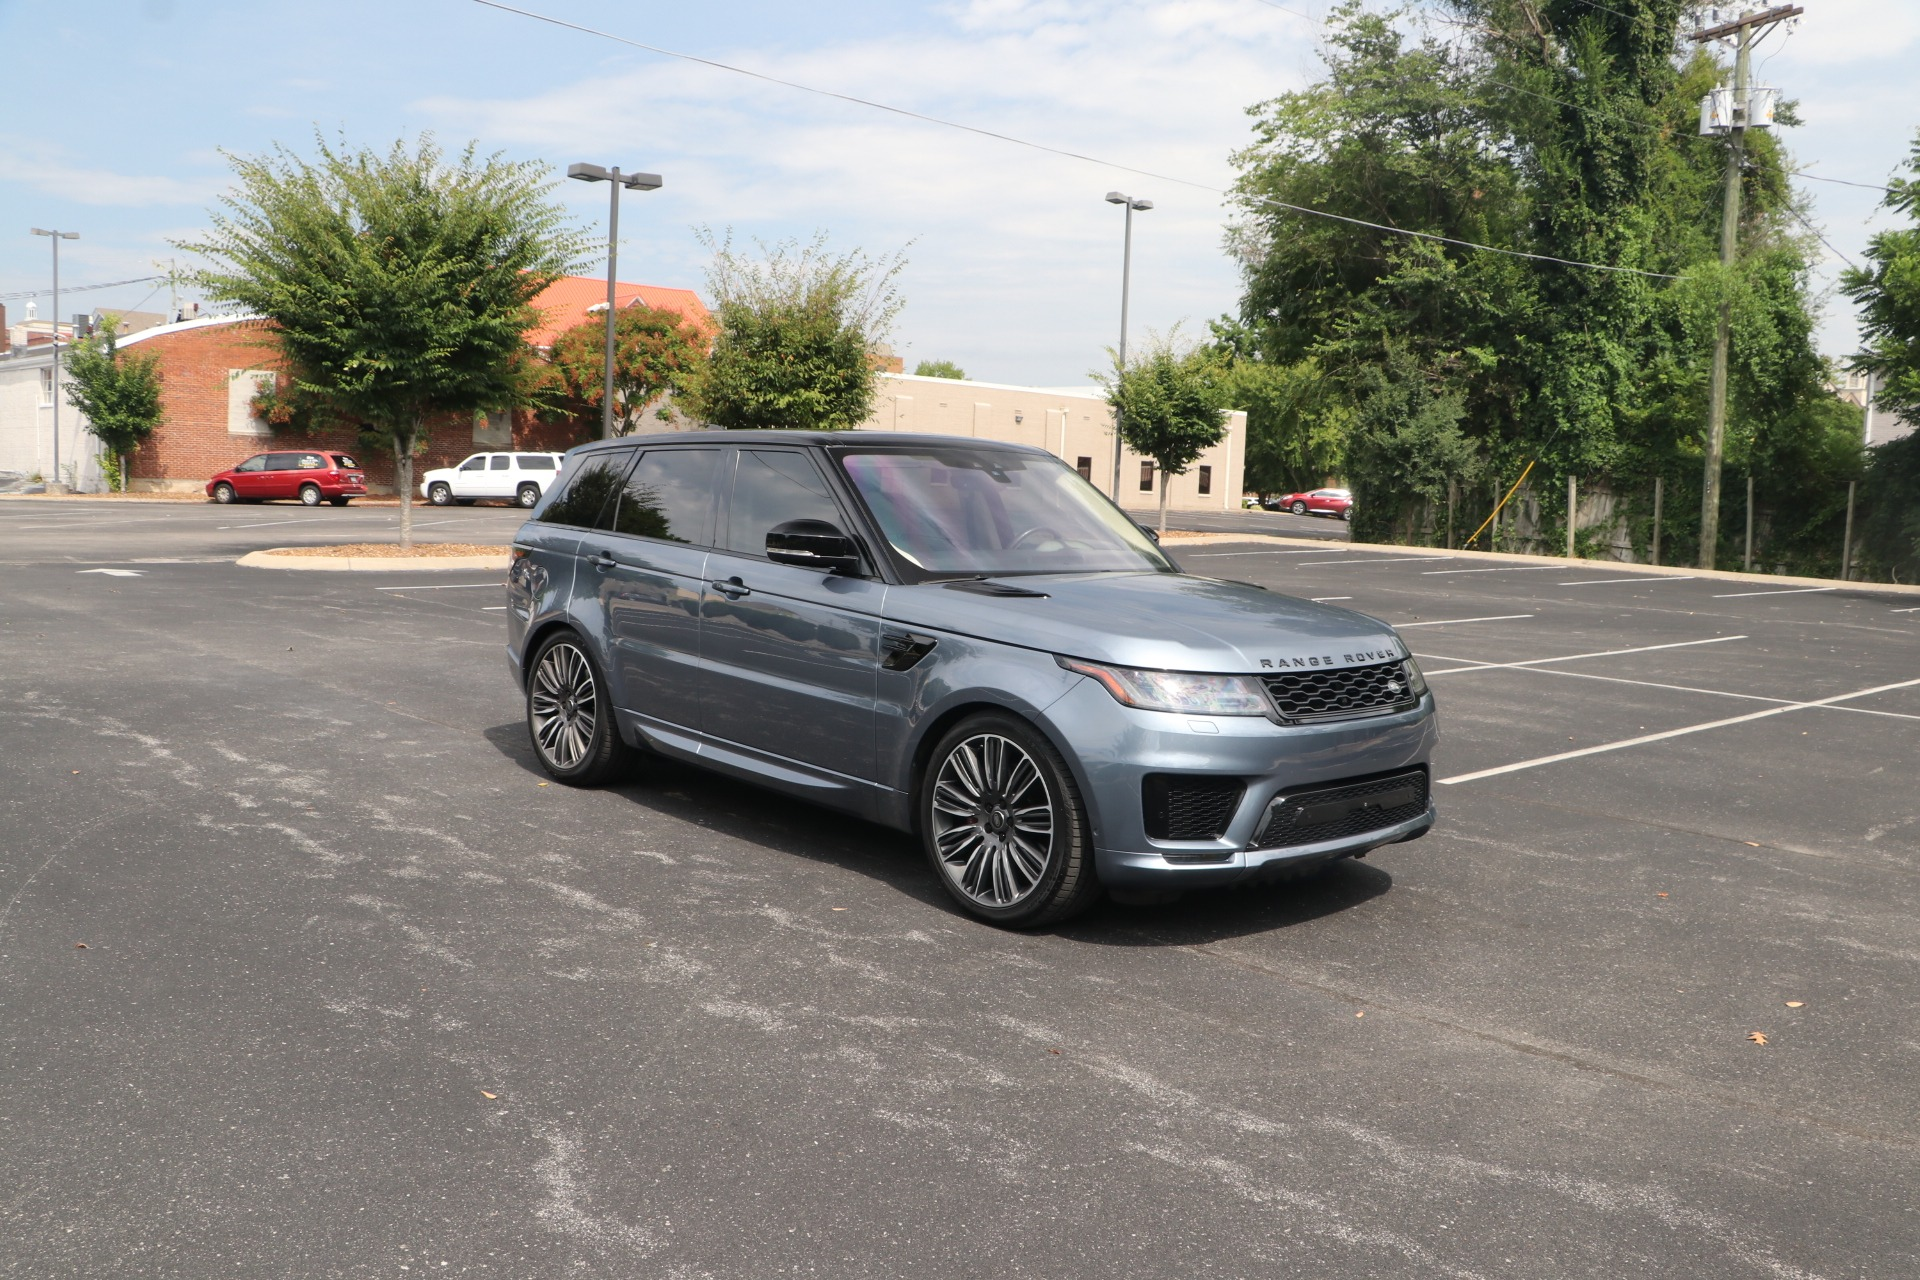 Used 2019 Land Rover Range Rover Sport V6 SUPERCHARGED HSE DYNAMIC AWD HSE Dynamic for sale Sold at Auto Collection in Murfreesboro TN 37130 1